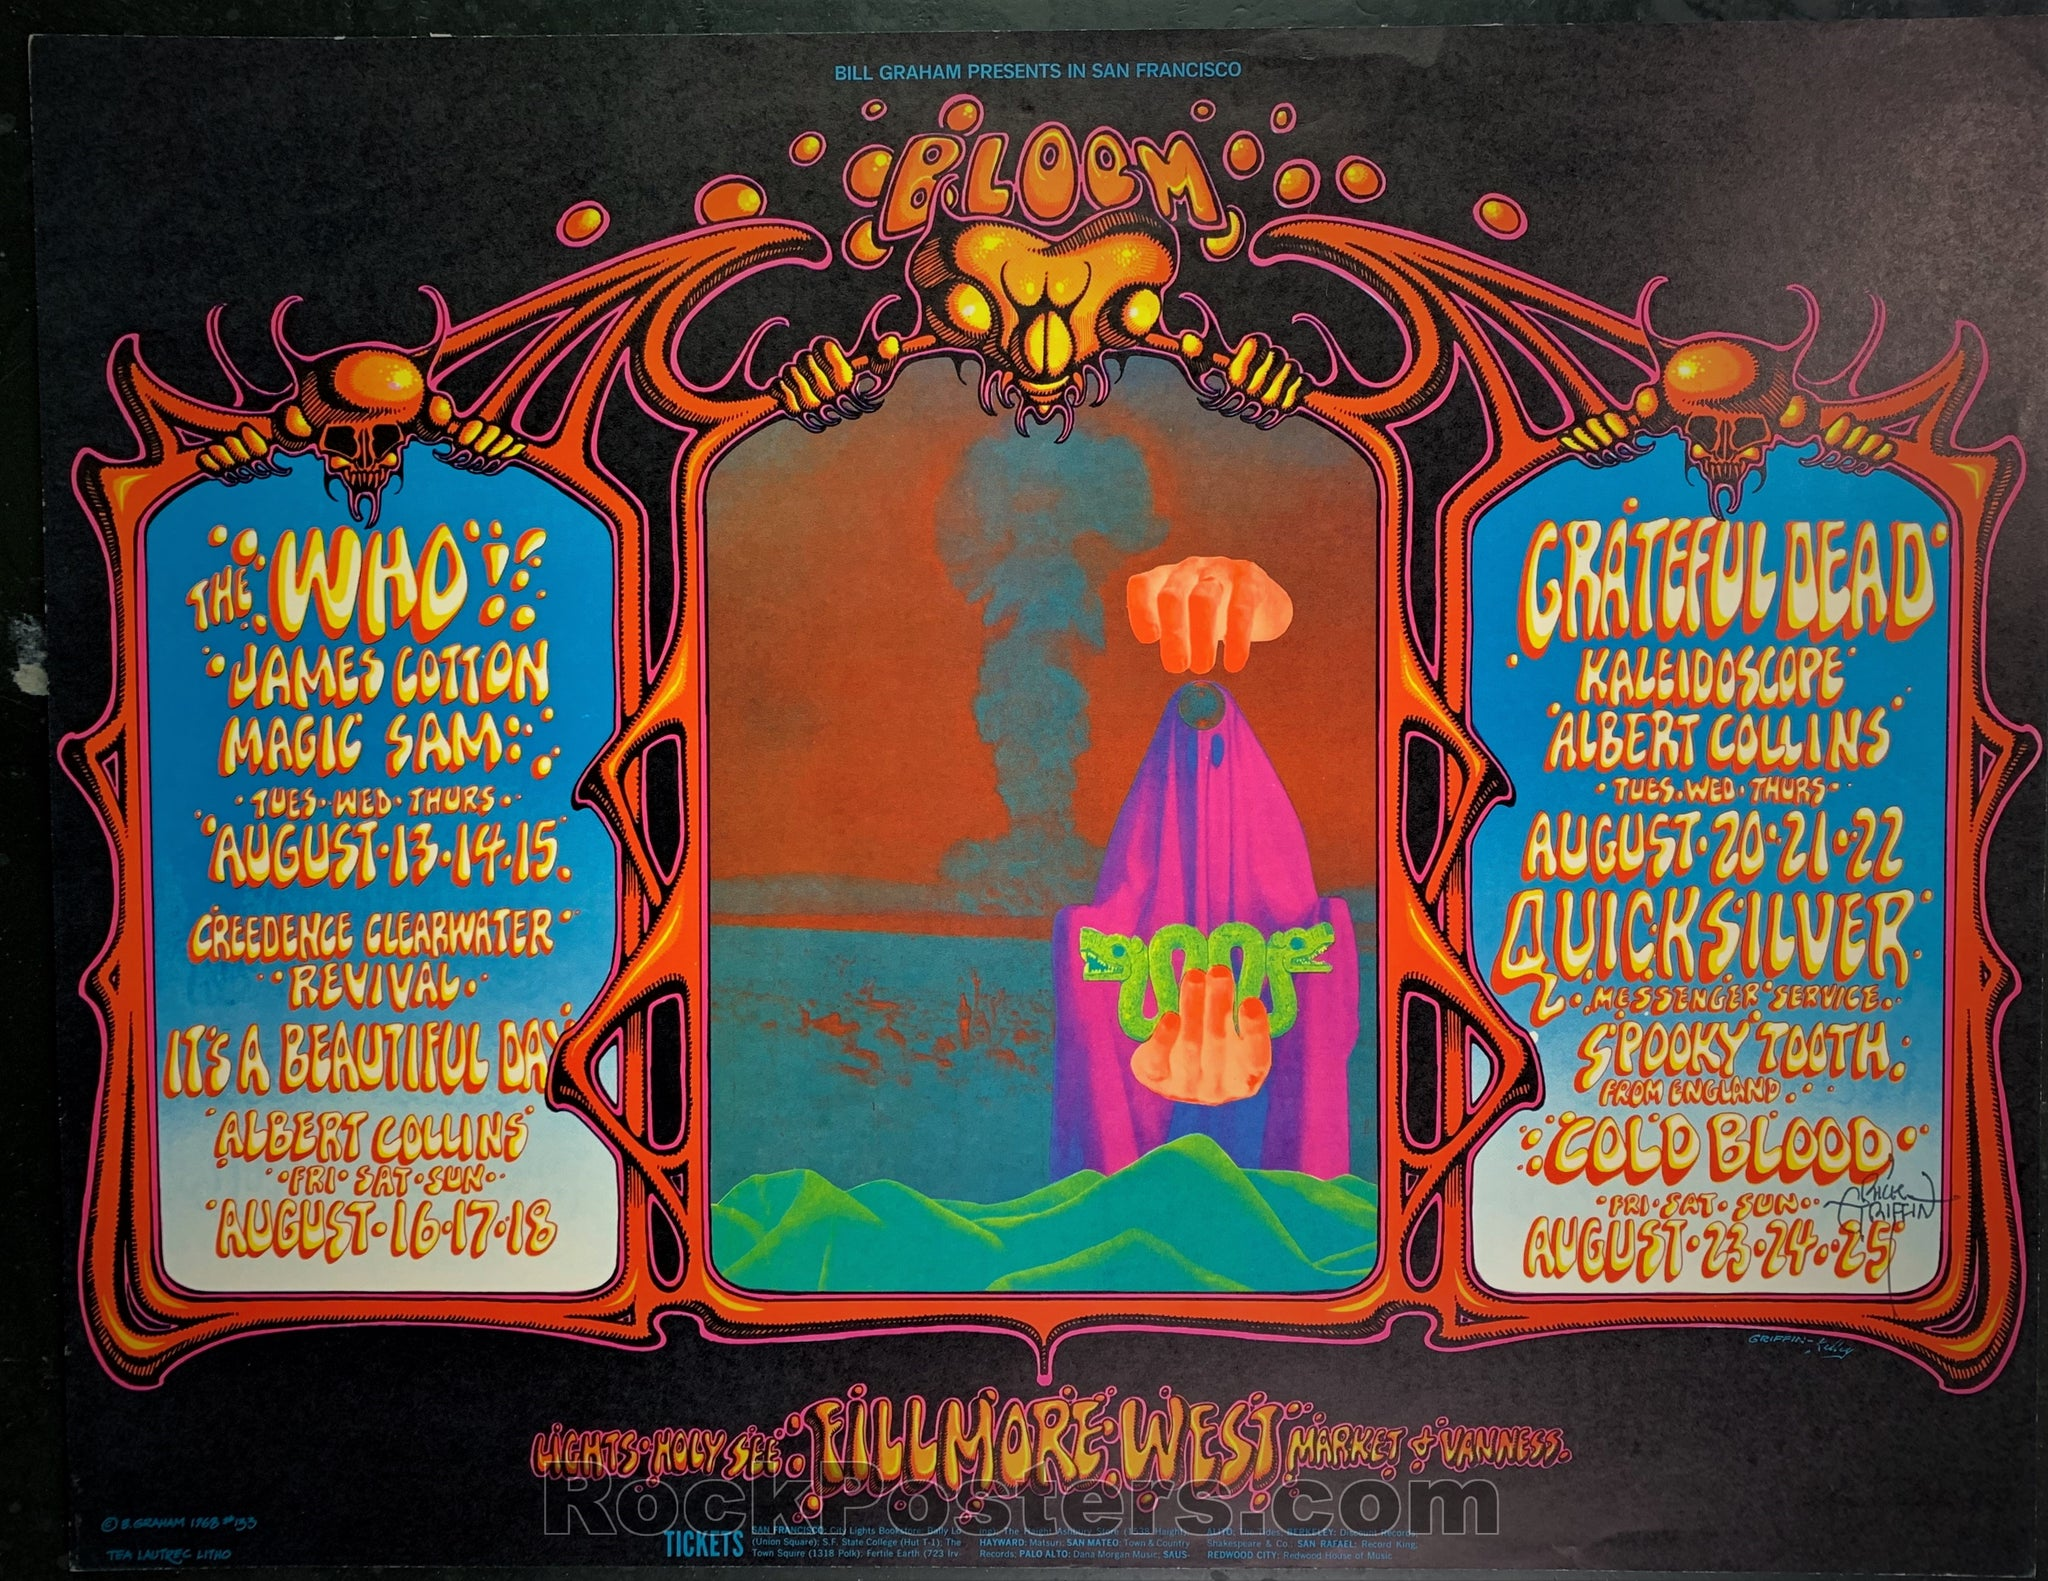 AUCTION - BG133 - The Who Grateful Dead - Rick Griffin SIGNED Poster - Fillmore West - Condition - Excellent